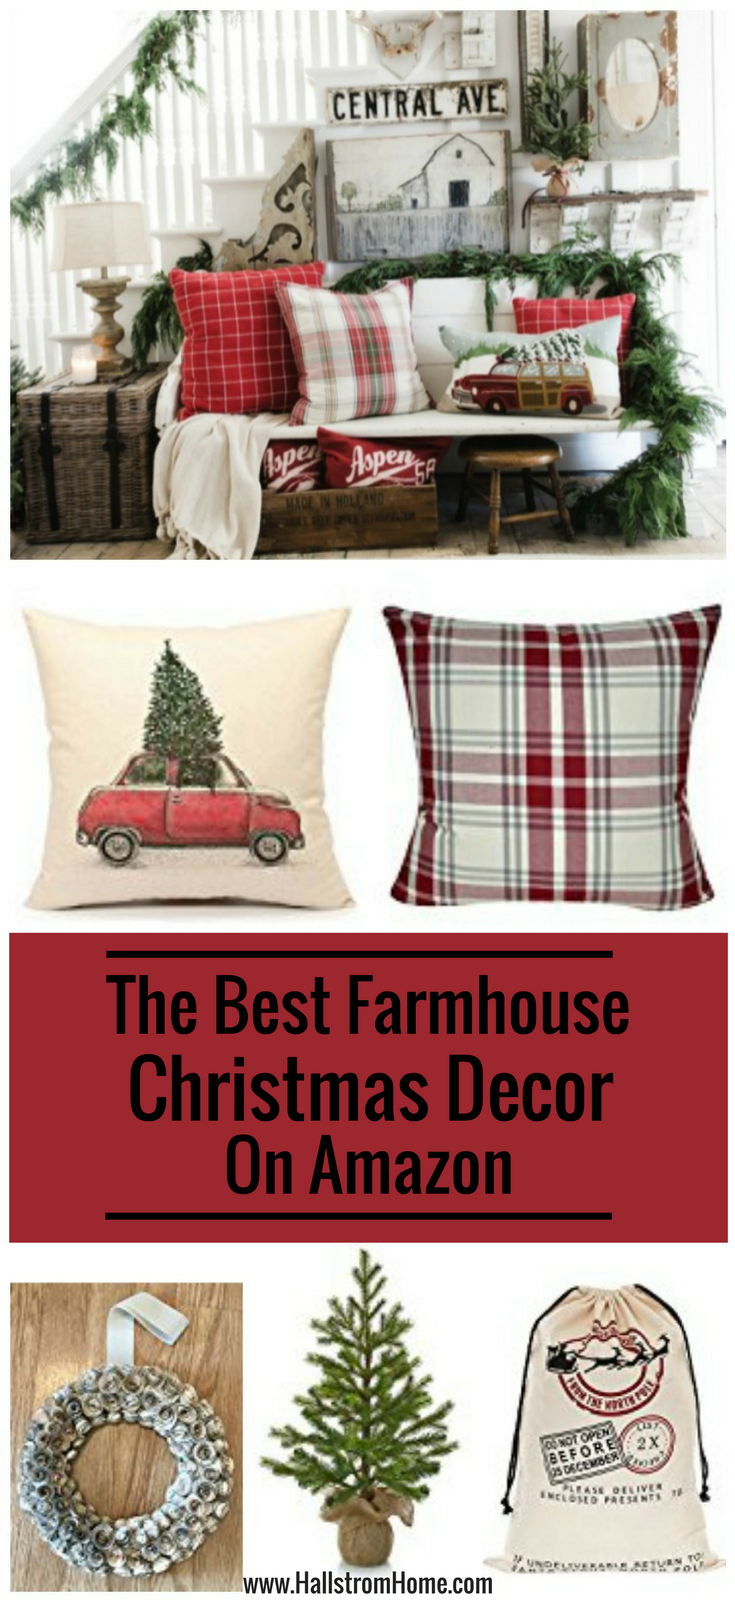 The Best Christmas Farmhouse Decor On Amazon Hallstrom Home